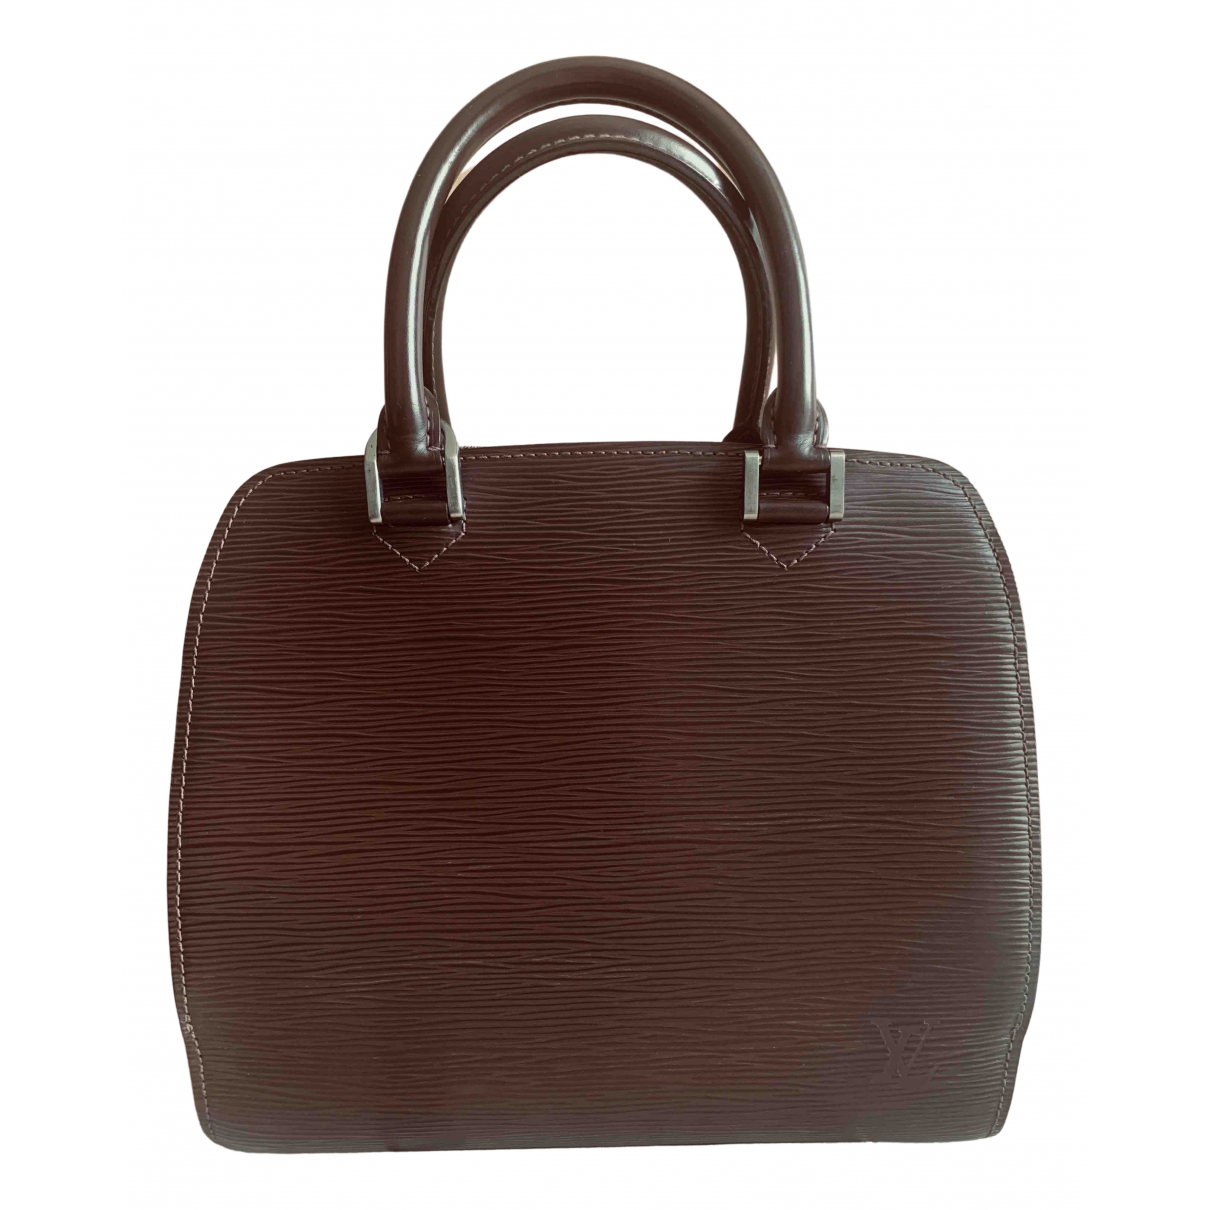 Louis Vuitton Pont Neuf Vintage  Brown Leather handbag for Women \N